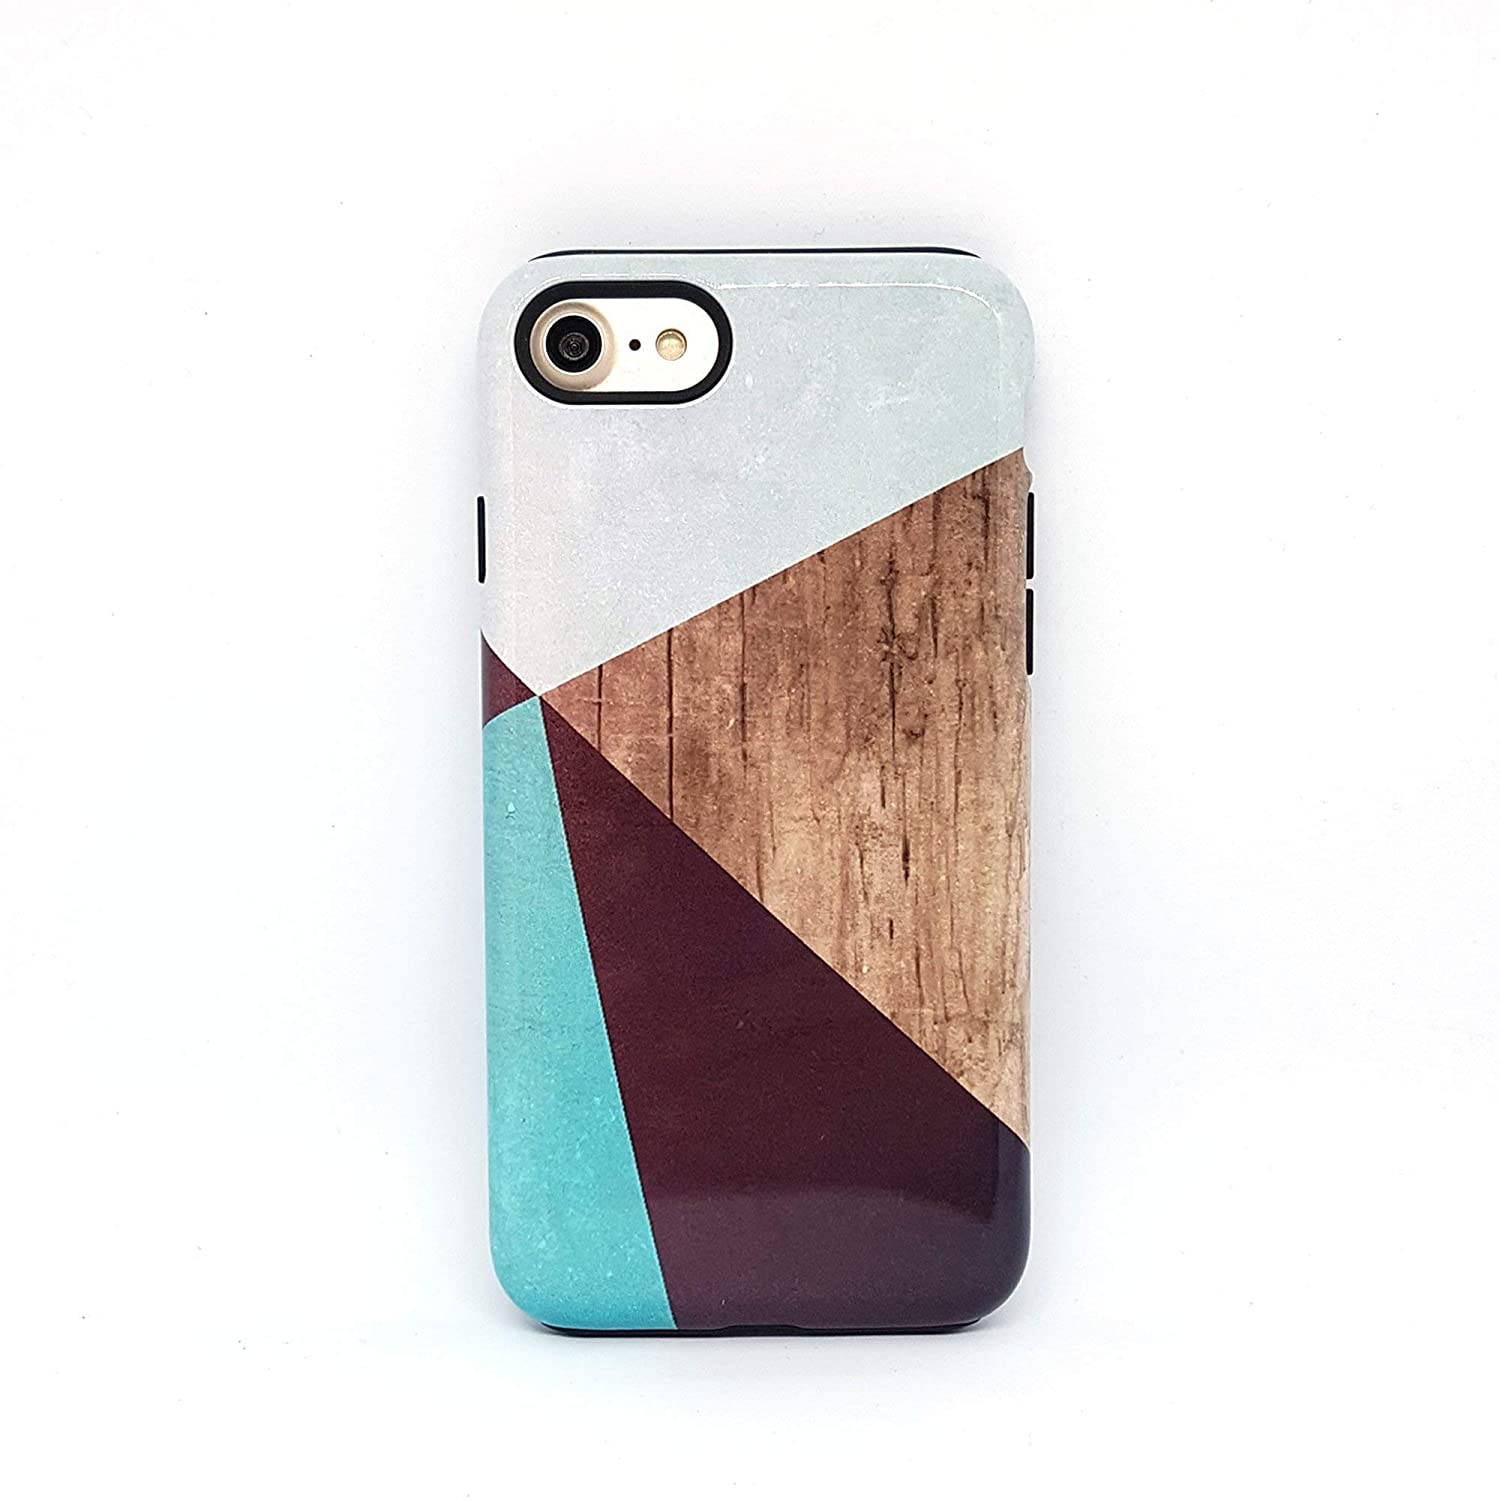 Geometrico Legno cover case custodia per iPhone 5, 5s, 6, 6s, 7, 7 plus, 8, 8 plus, X, XS, per Galaxy S6, S7, S8